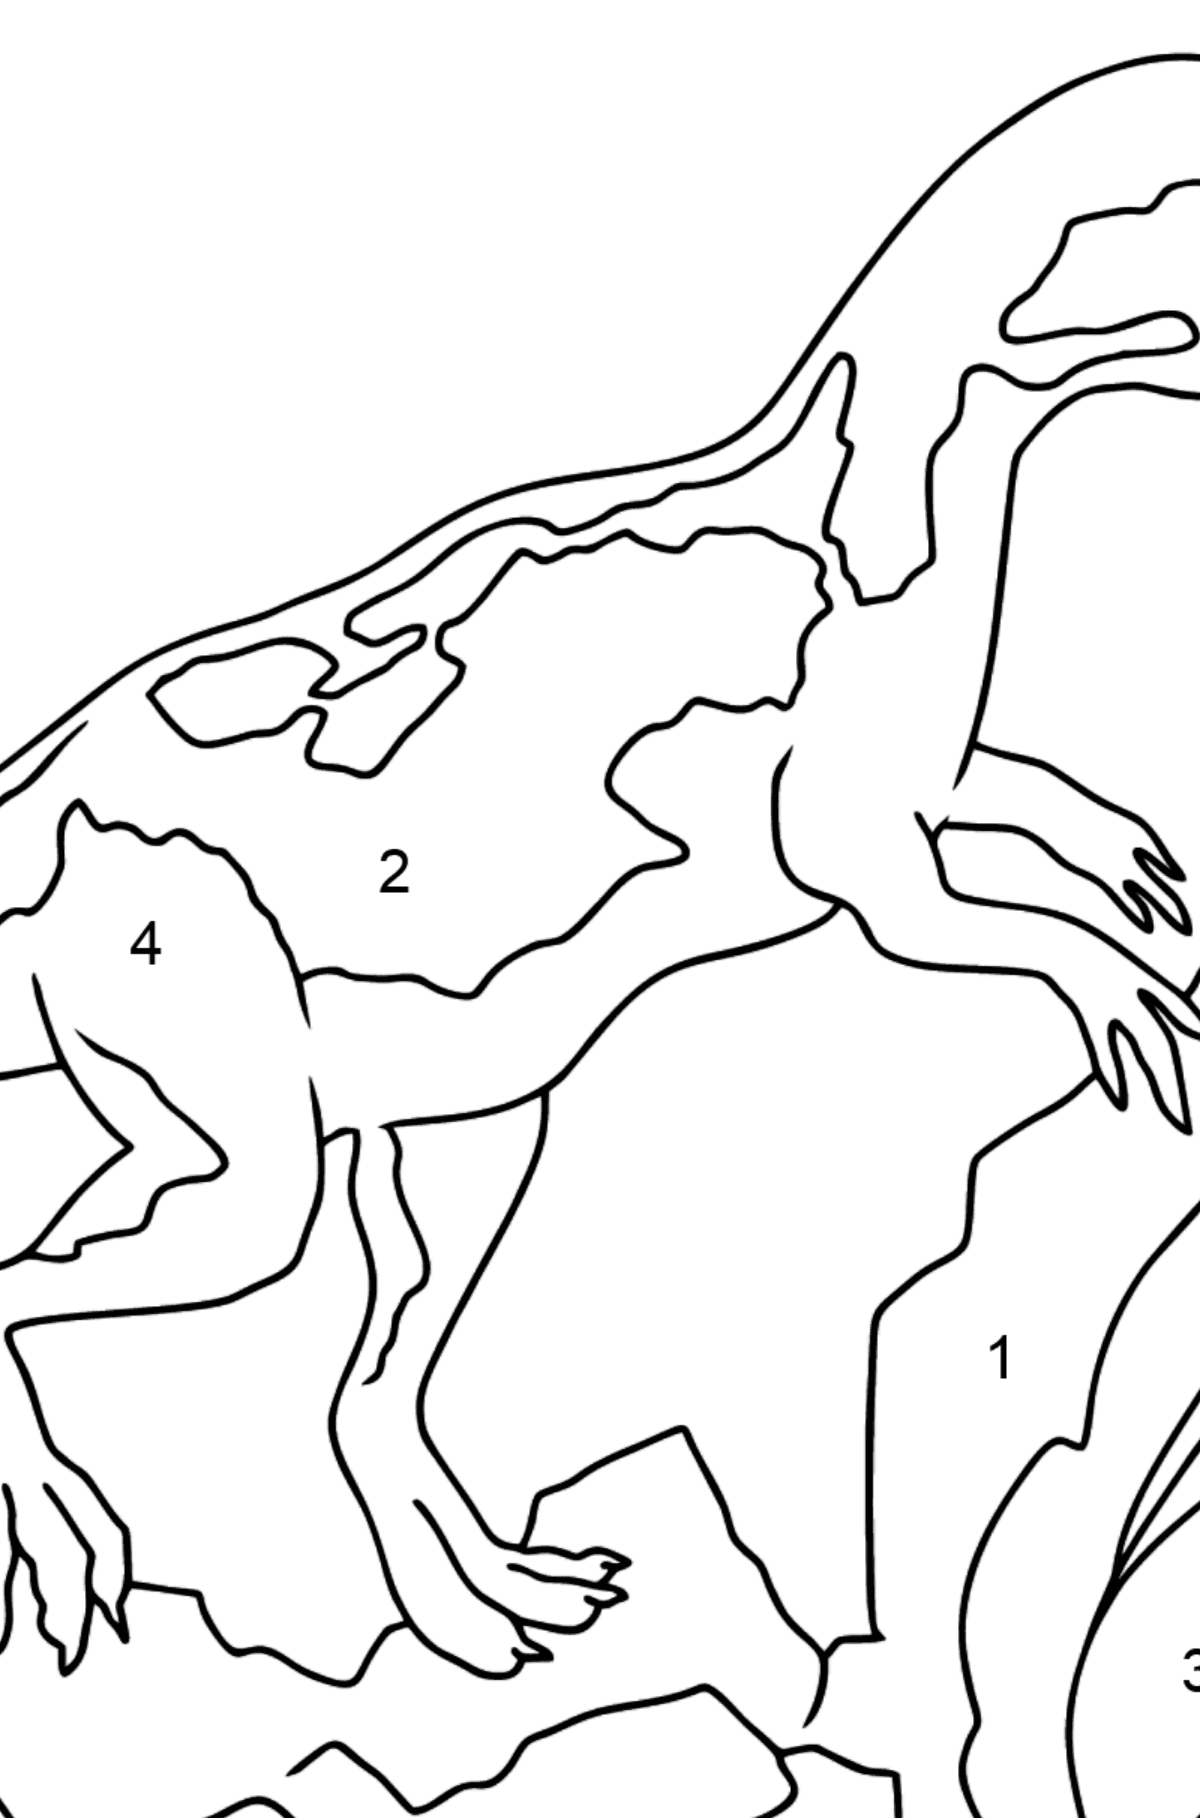 Coloring Page - A Dinosaur is Looking for Food - Coloring by Numbers for Kids